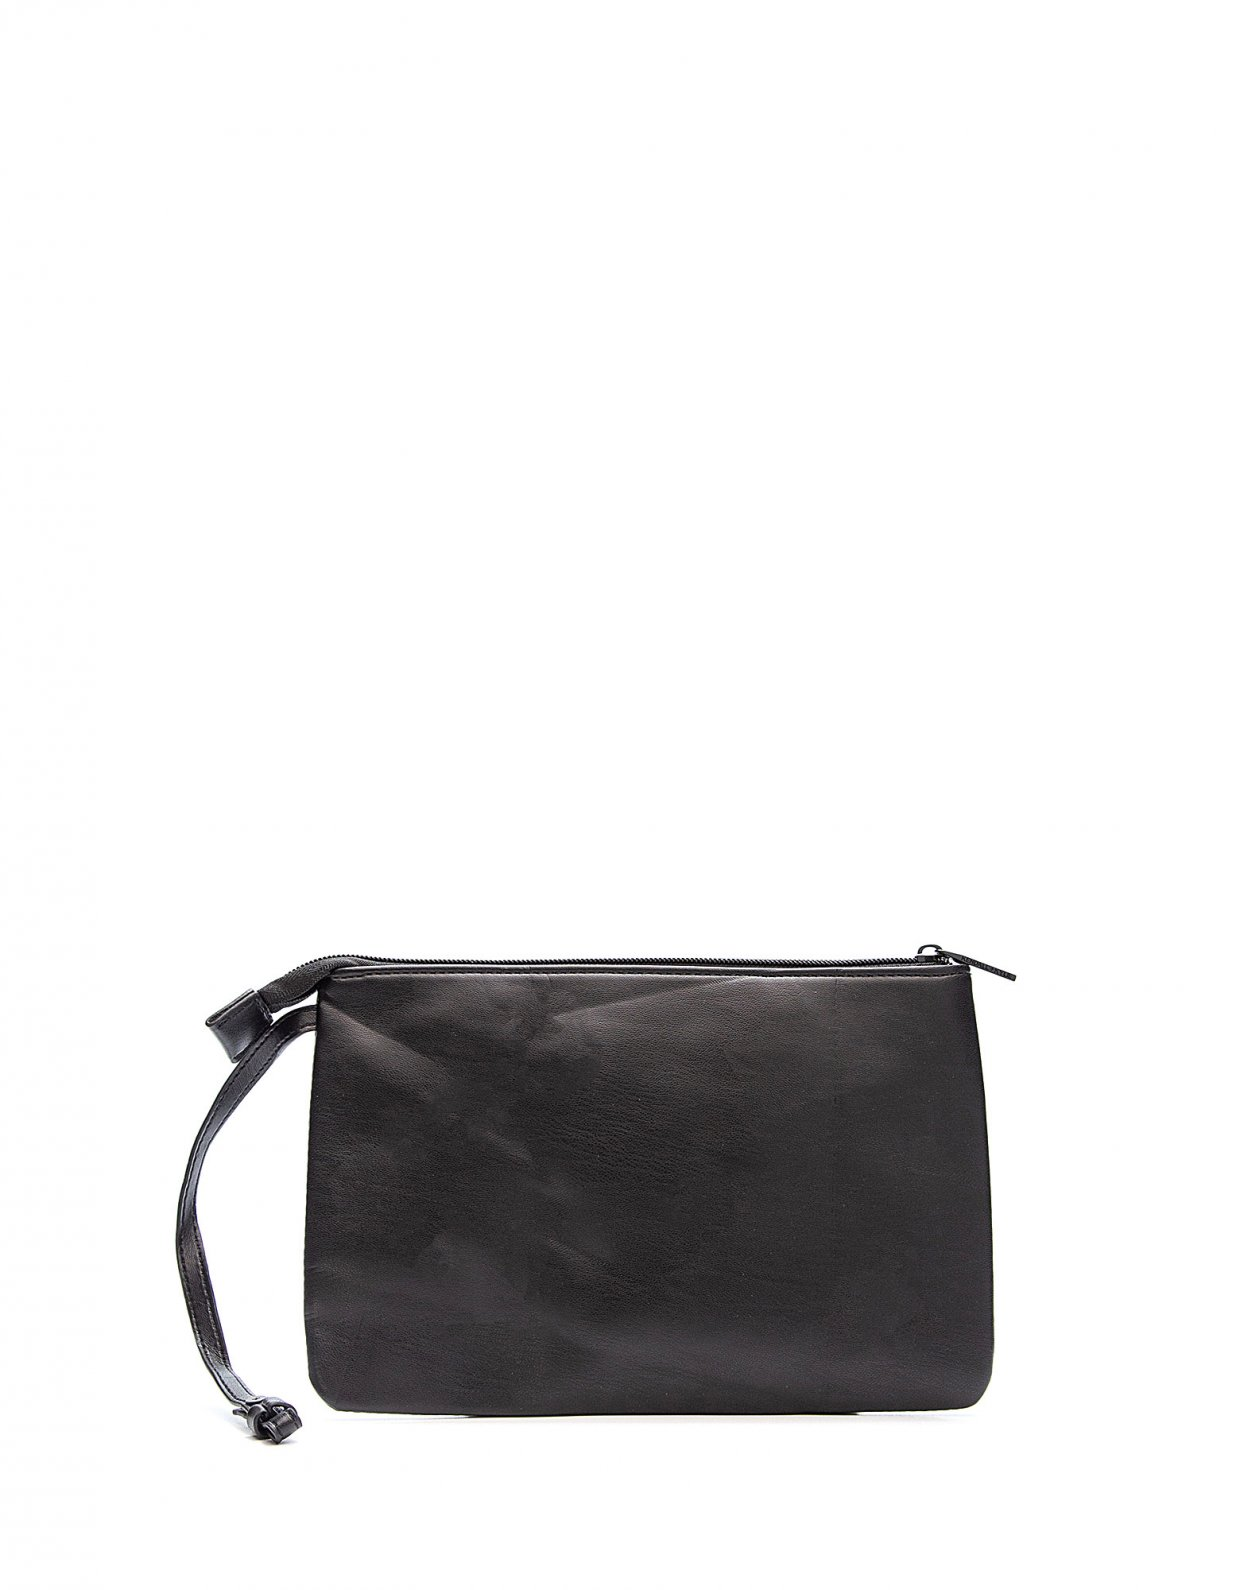 Kendall + Kylie Chrishell tote bag natural canvas